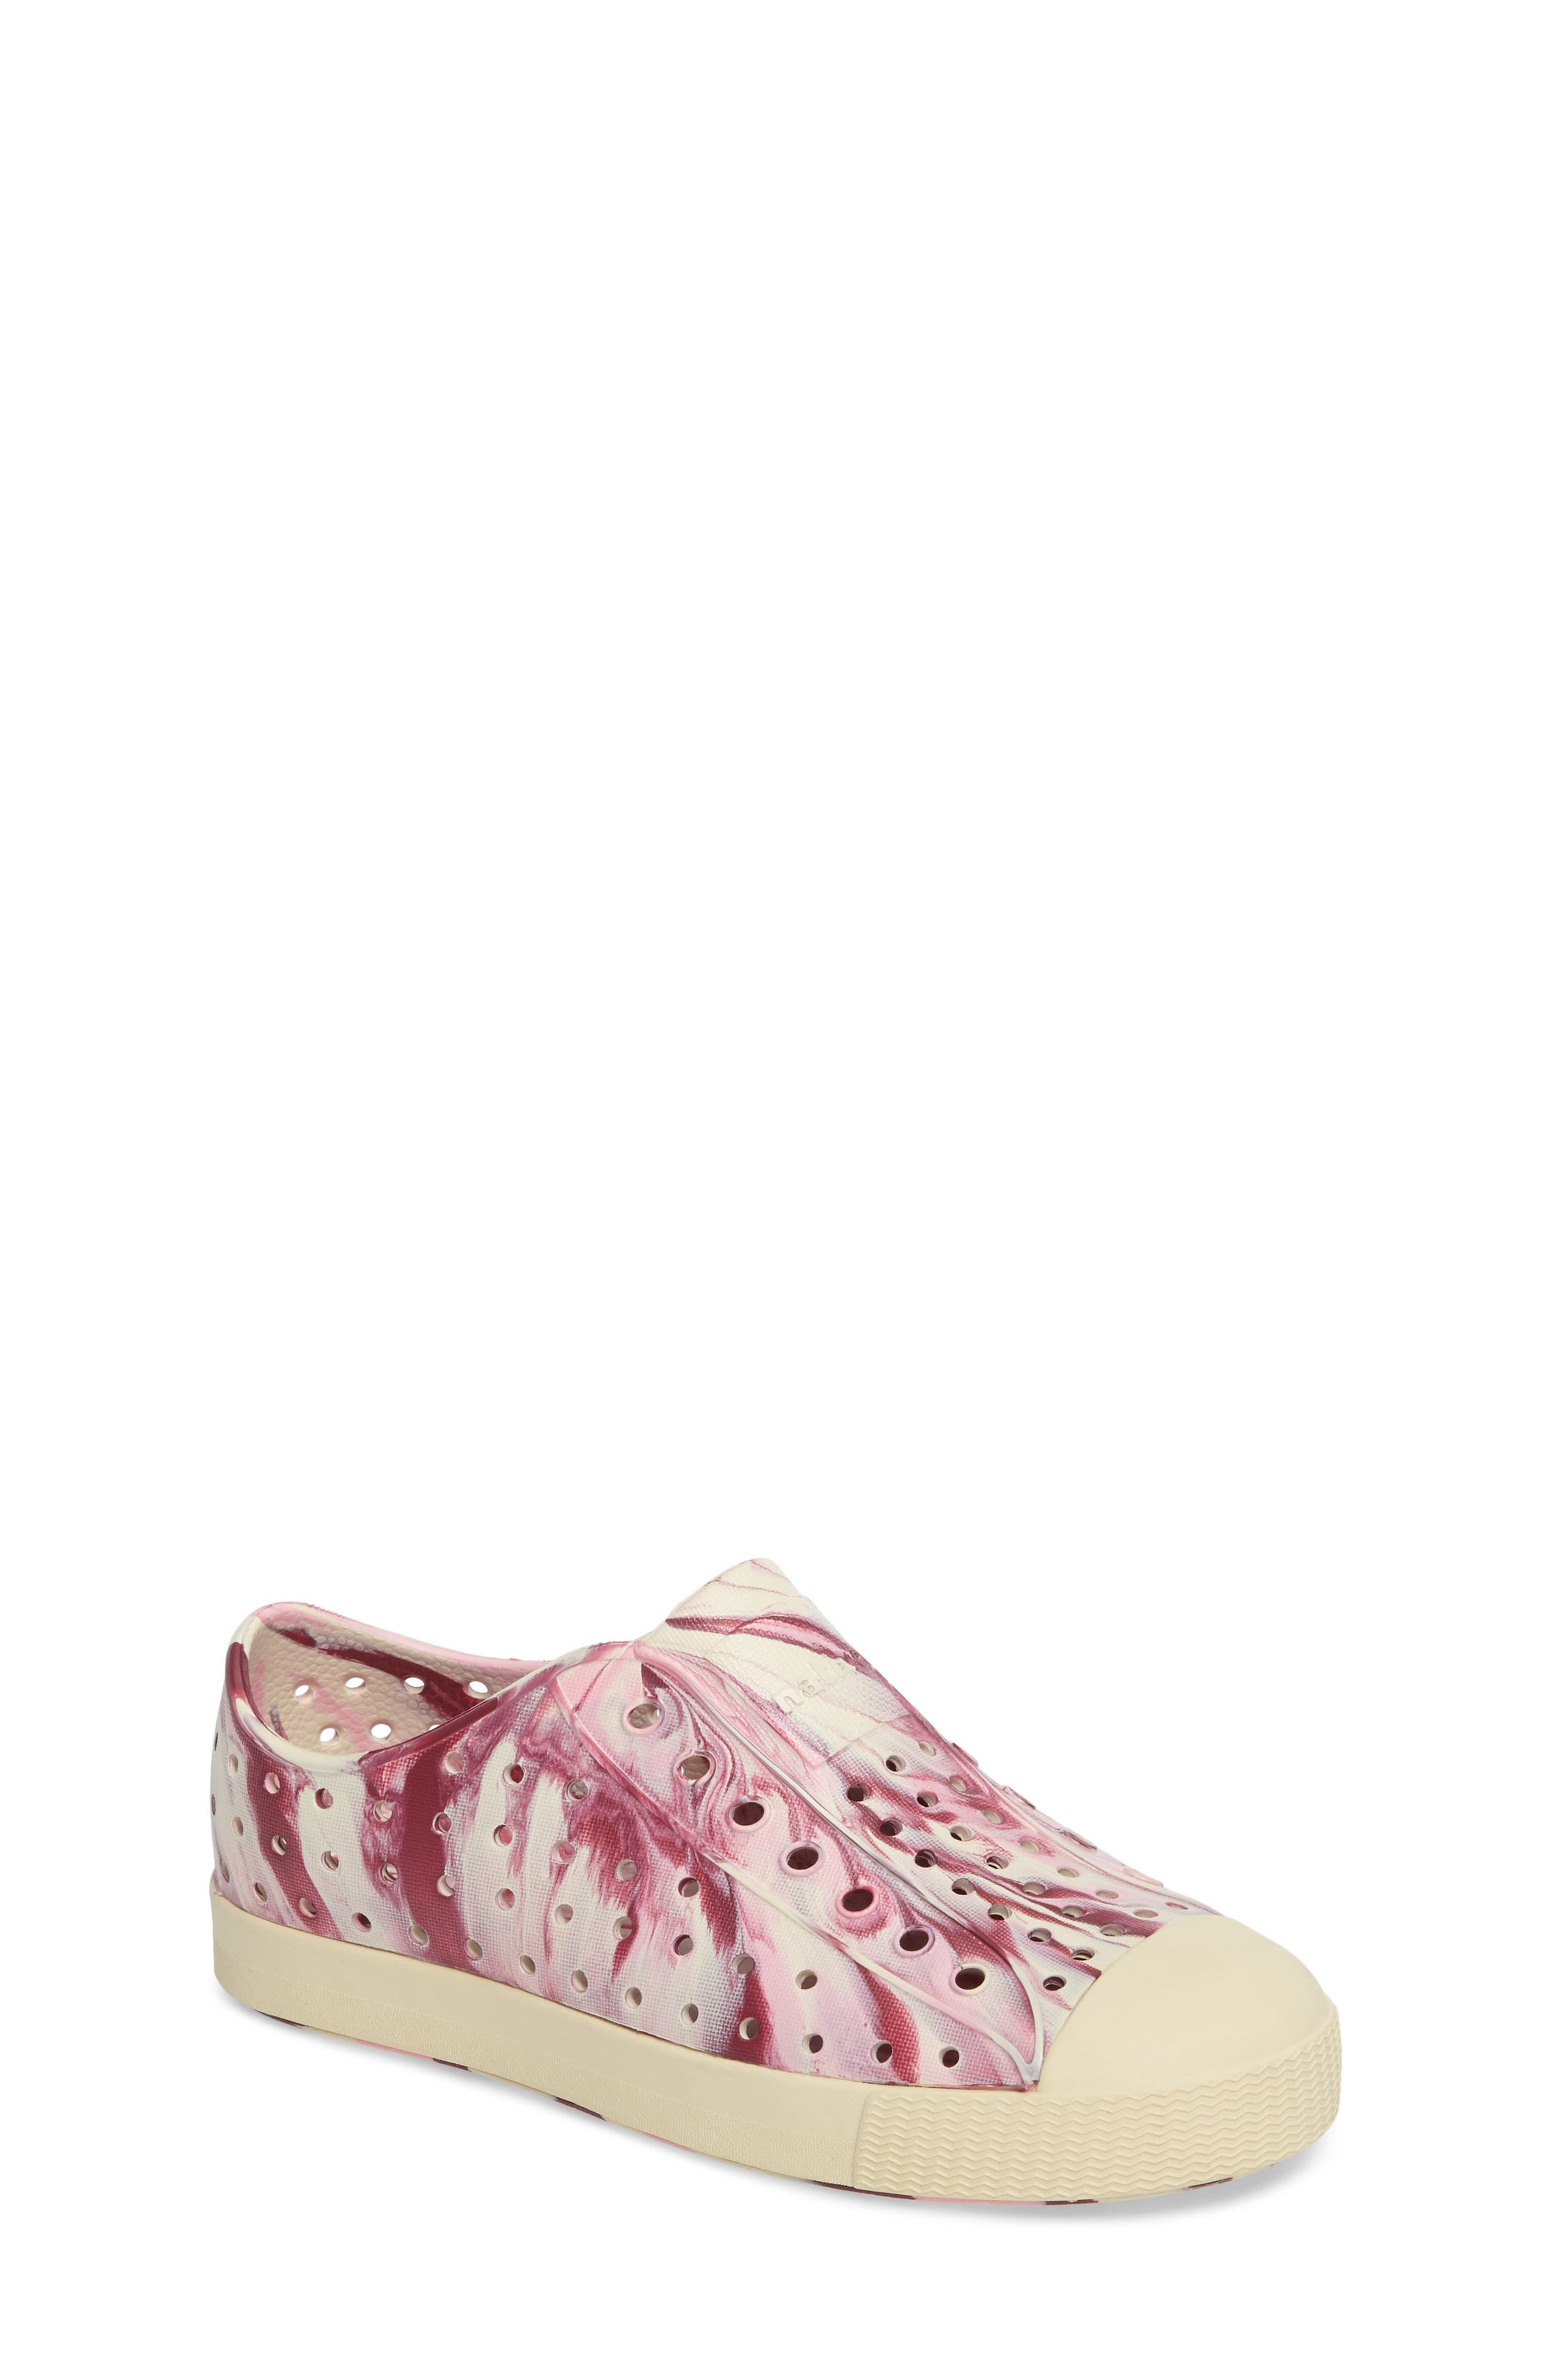 Main Image - Native Shoes Jefferson - Marbled Perforated Slip-On (Walker, Toddler & Little Kid)